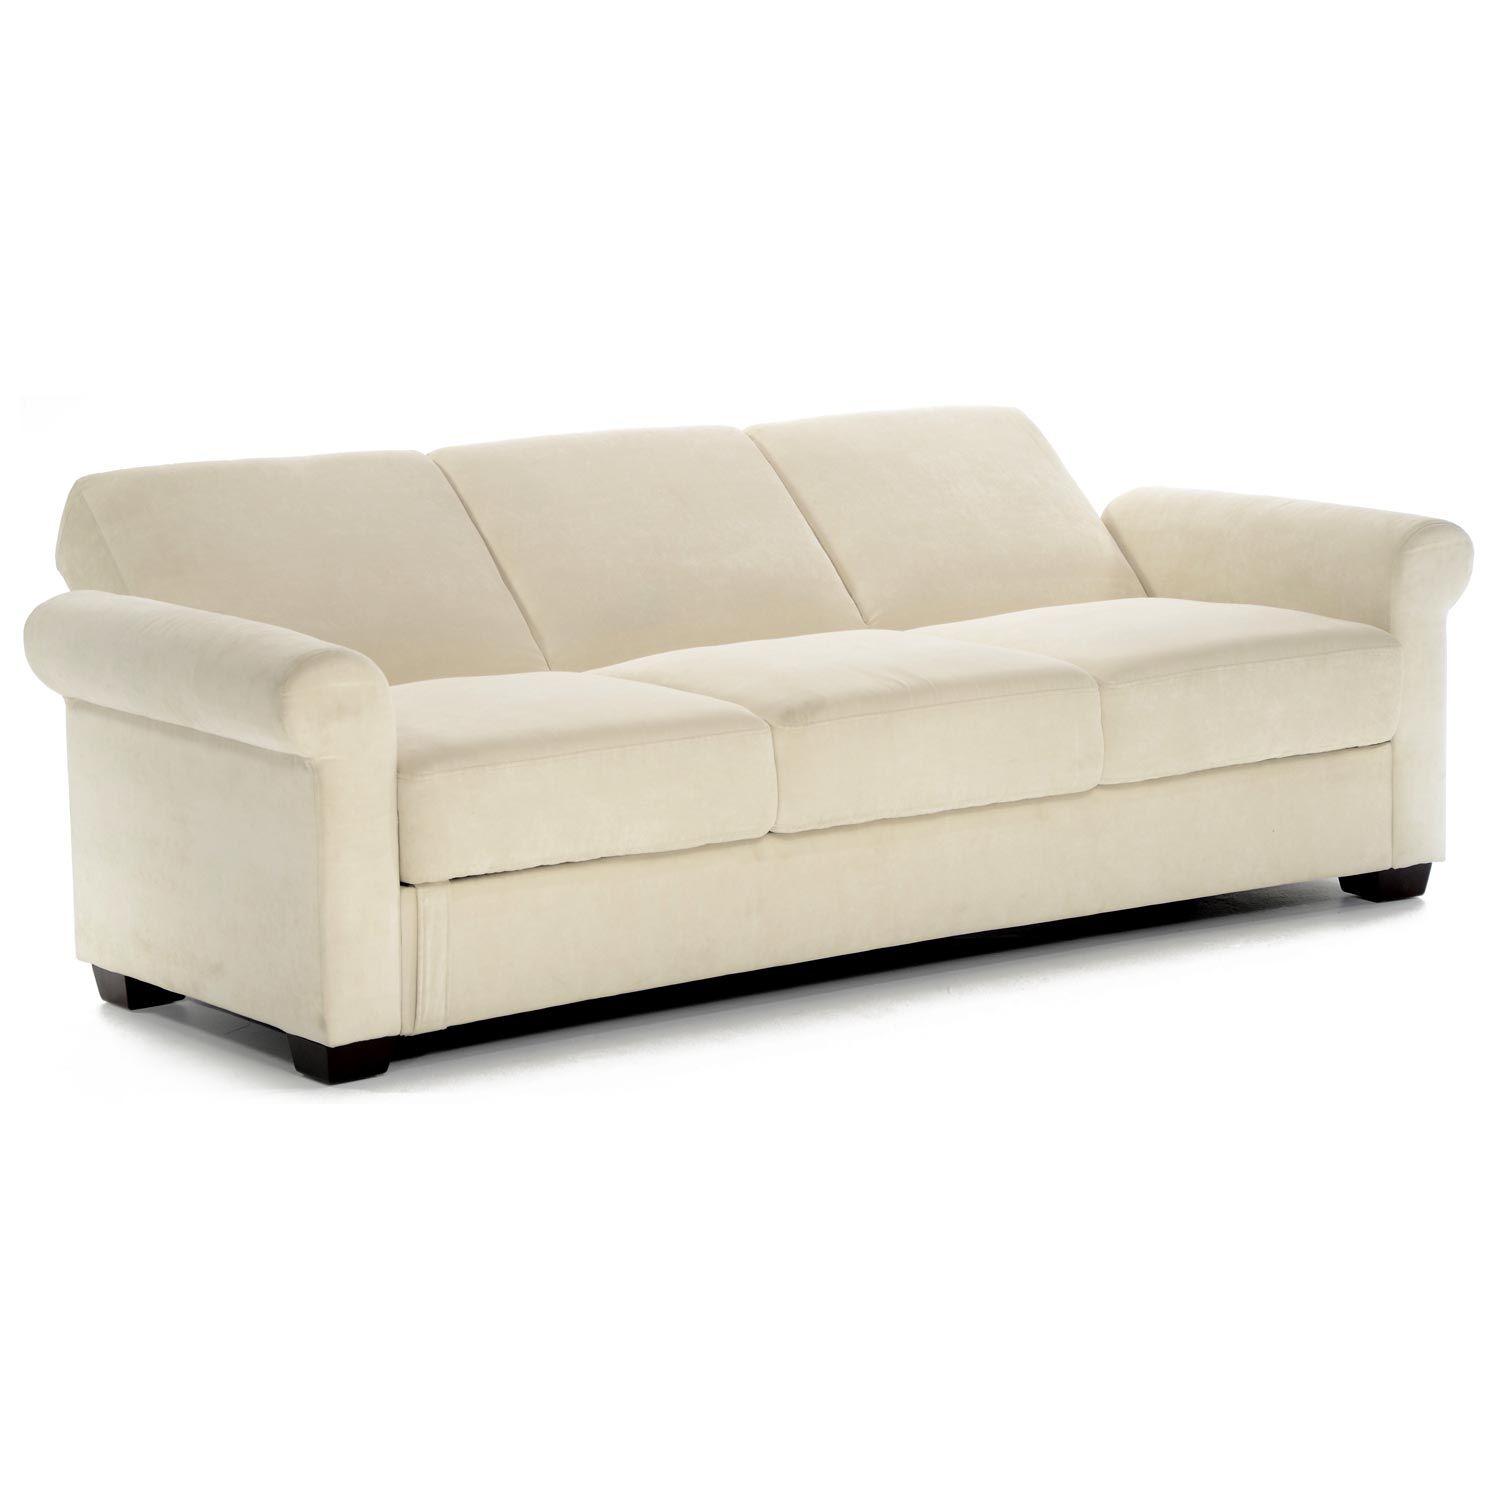 ... Thomas Fabric Convertible Sofa   Storage, Light Brown   LSS SA TMS  ...